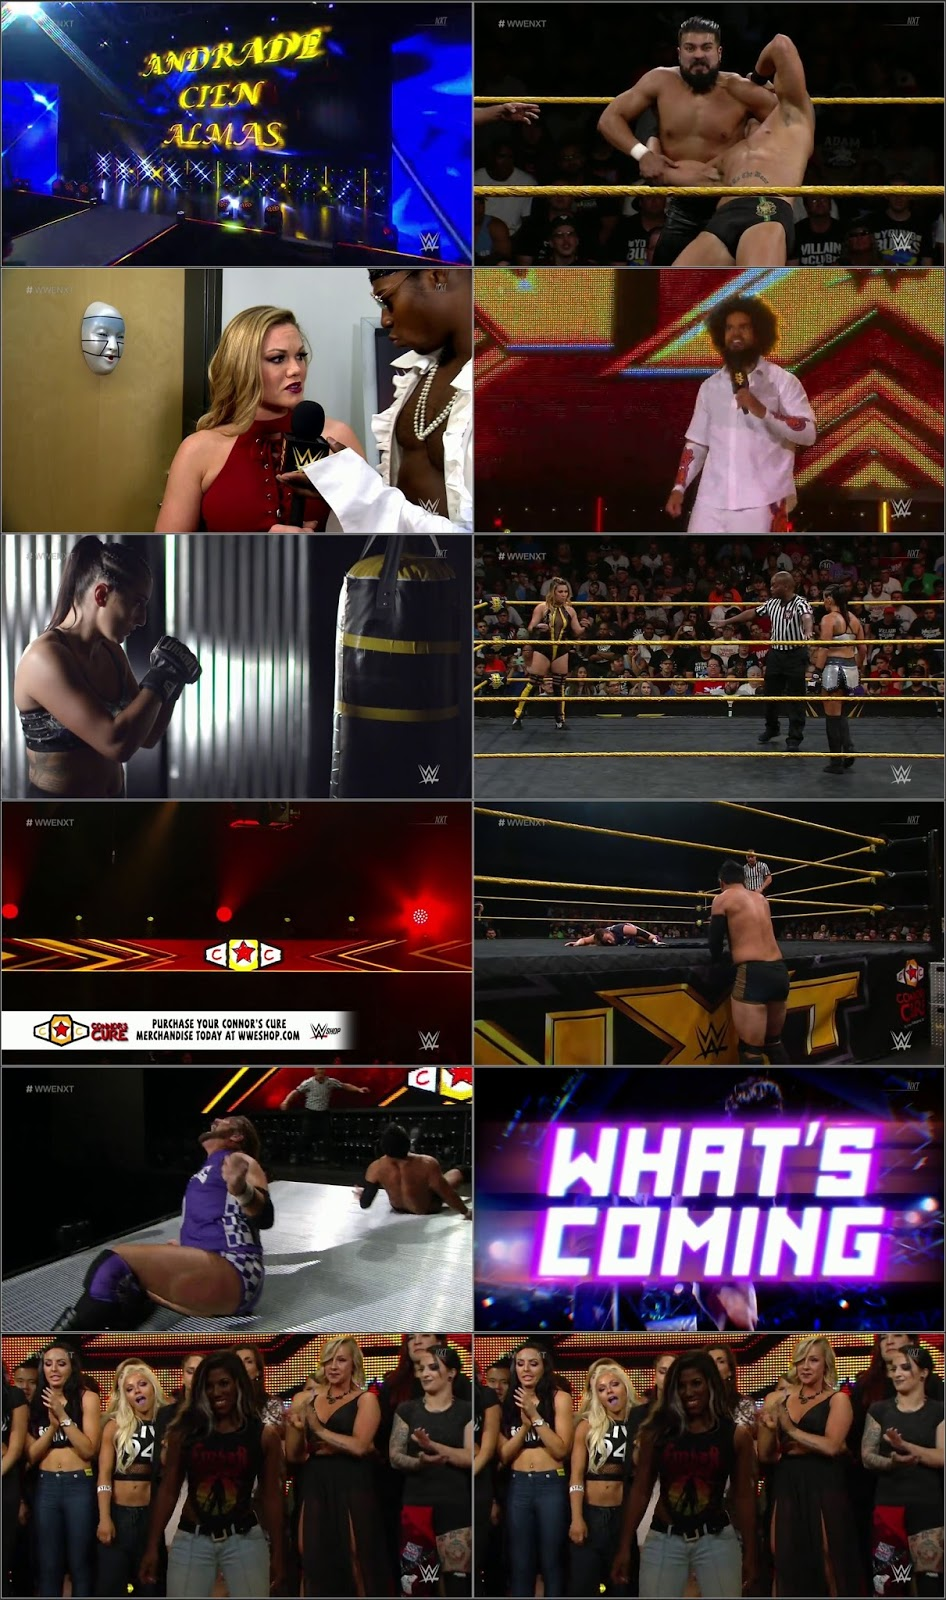 WWE NXT 6 SEPTEMBER 2017 2016 Wrestling Show 200MB Download 480P at freedomcopy.com